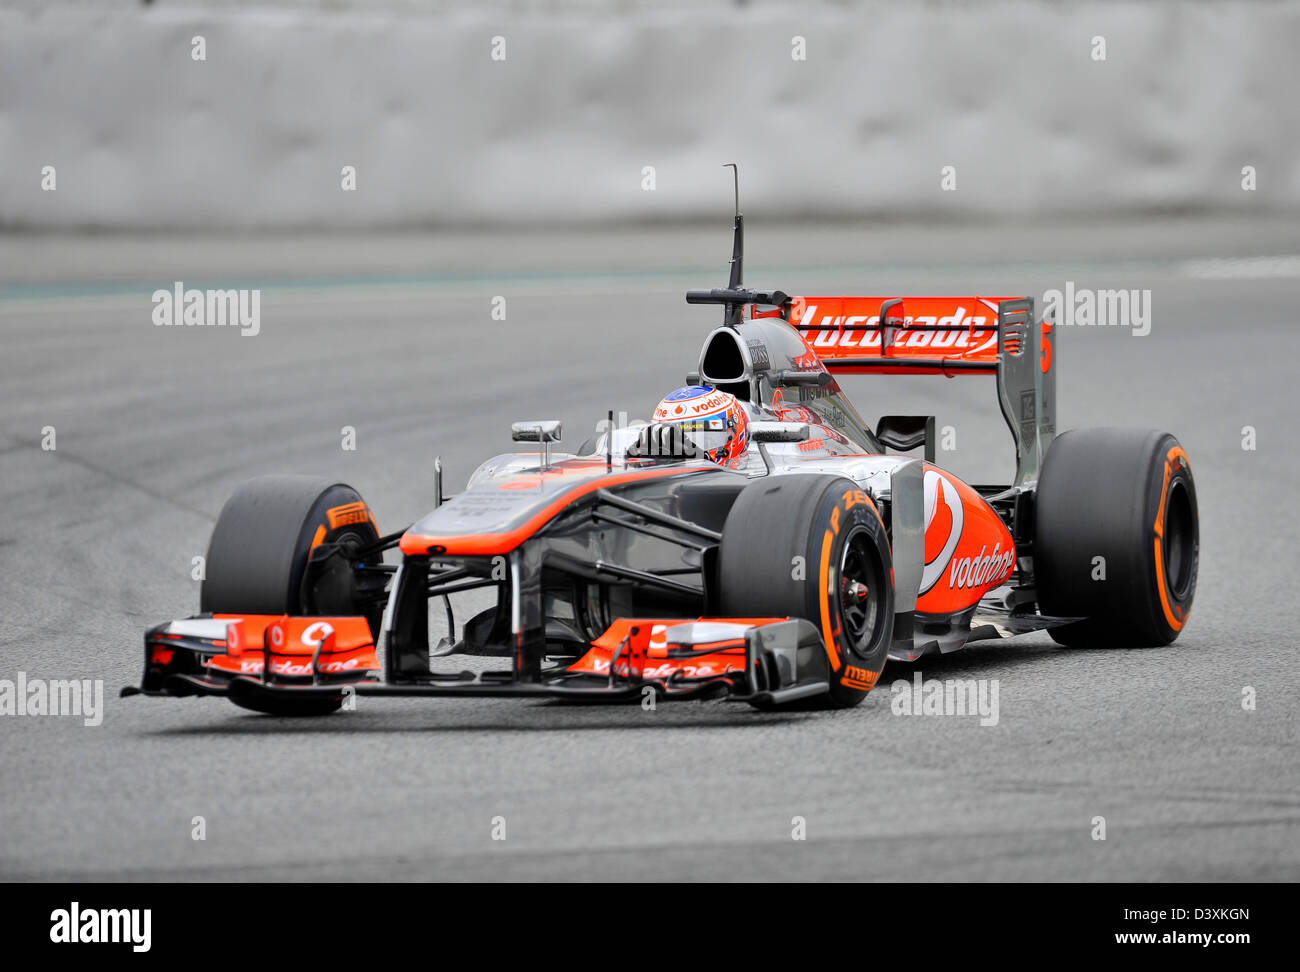 Jenson Button (GBR),McLaren Mercedes MP4-28 during Formula One tests on Circuit de Catalunya racetrack near Barcelona, - Stock Image